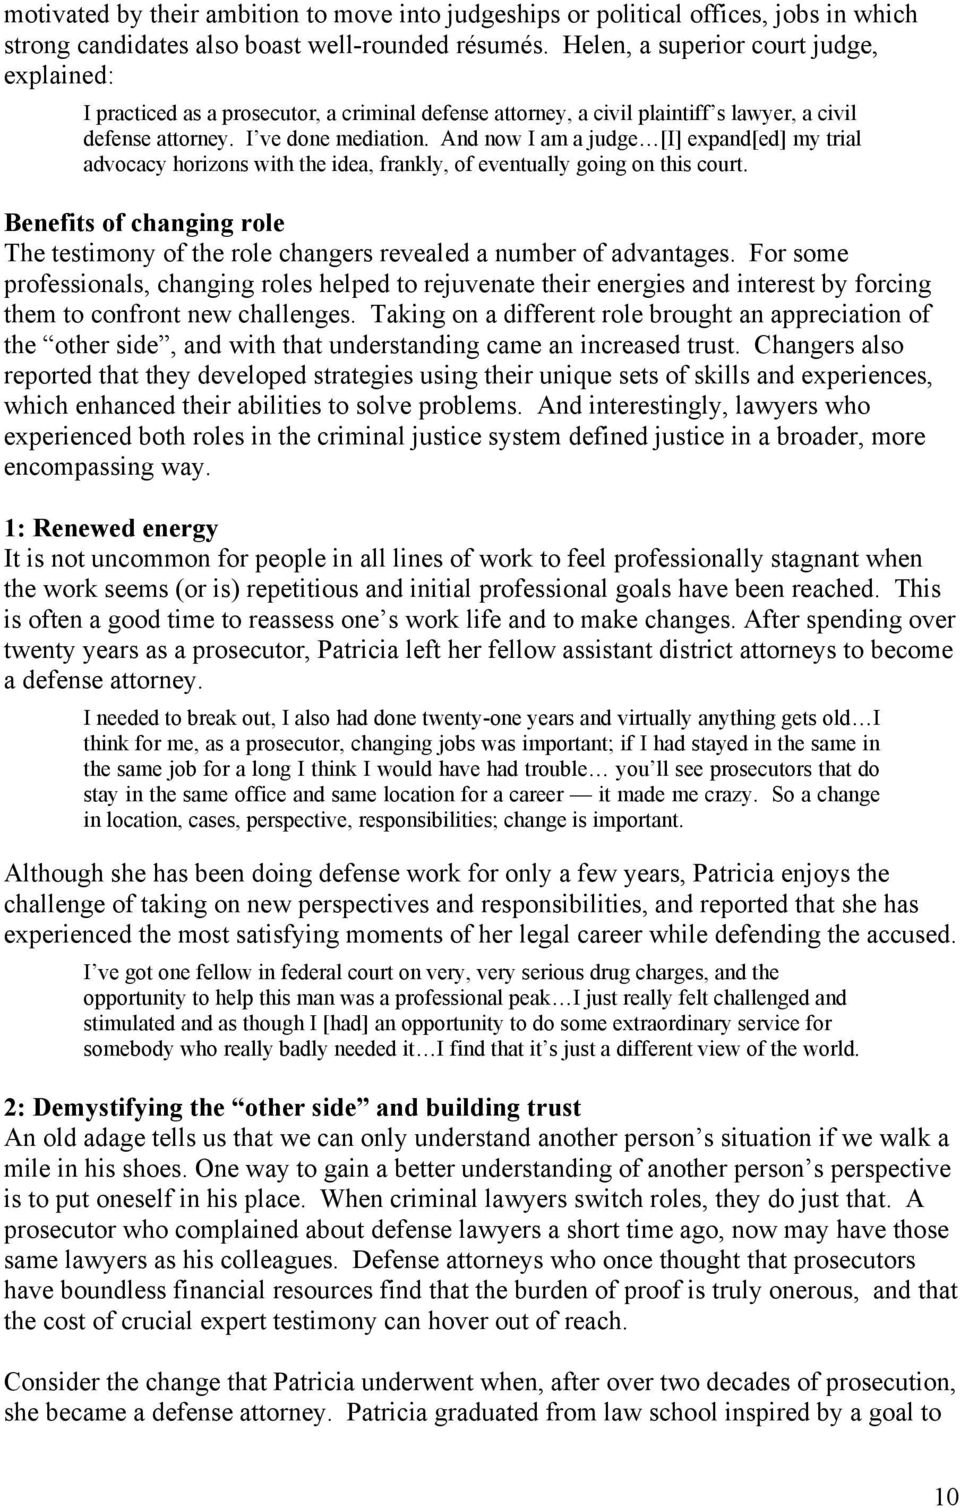 And now I am a judge [I] expand[ed] my trial advocacy horizons with the idea, frankly, of eventually going on this court.